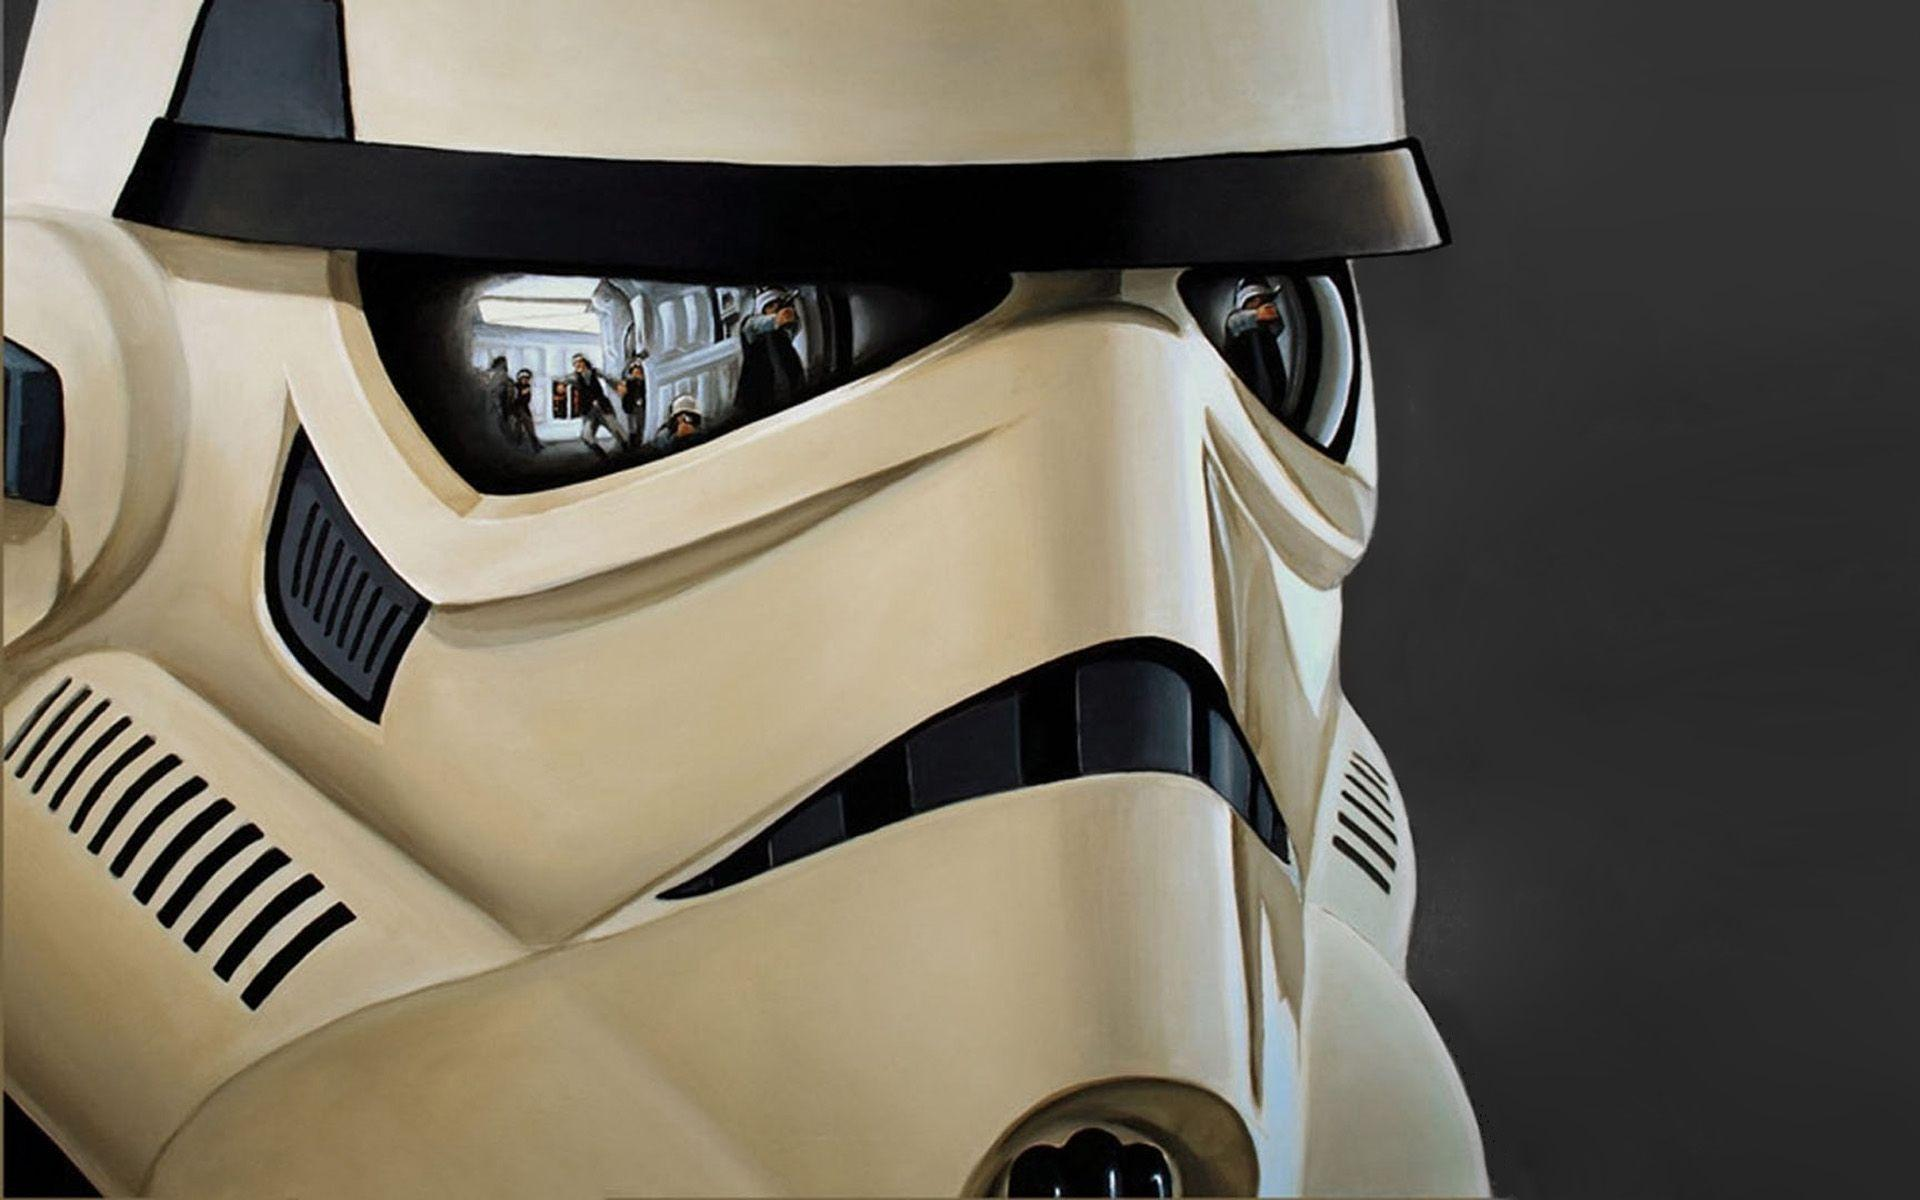 Star Wars 7 Stormtrooper Wallpaper - WallpaperSafari